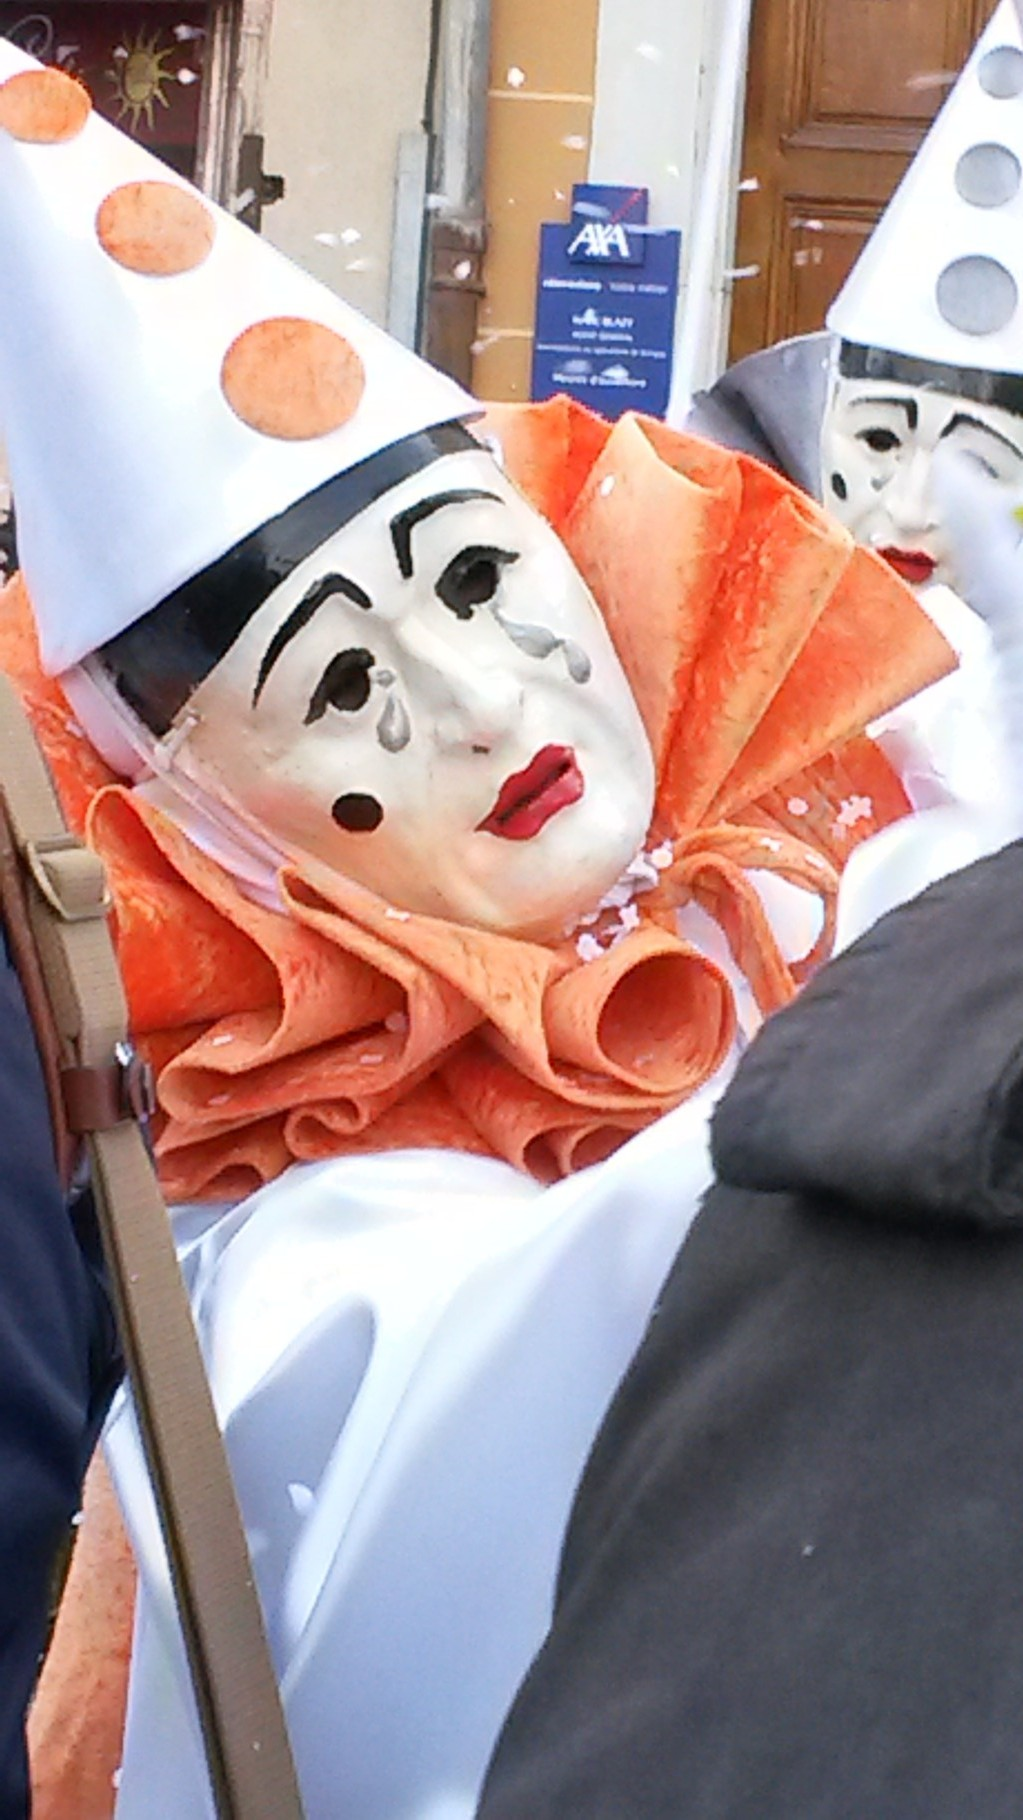 Limoux 's carnival